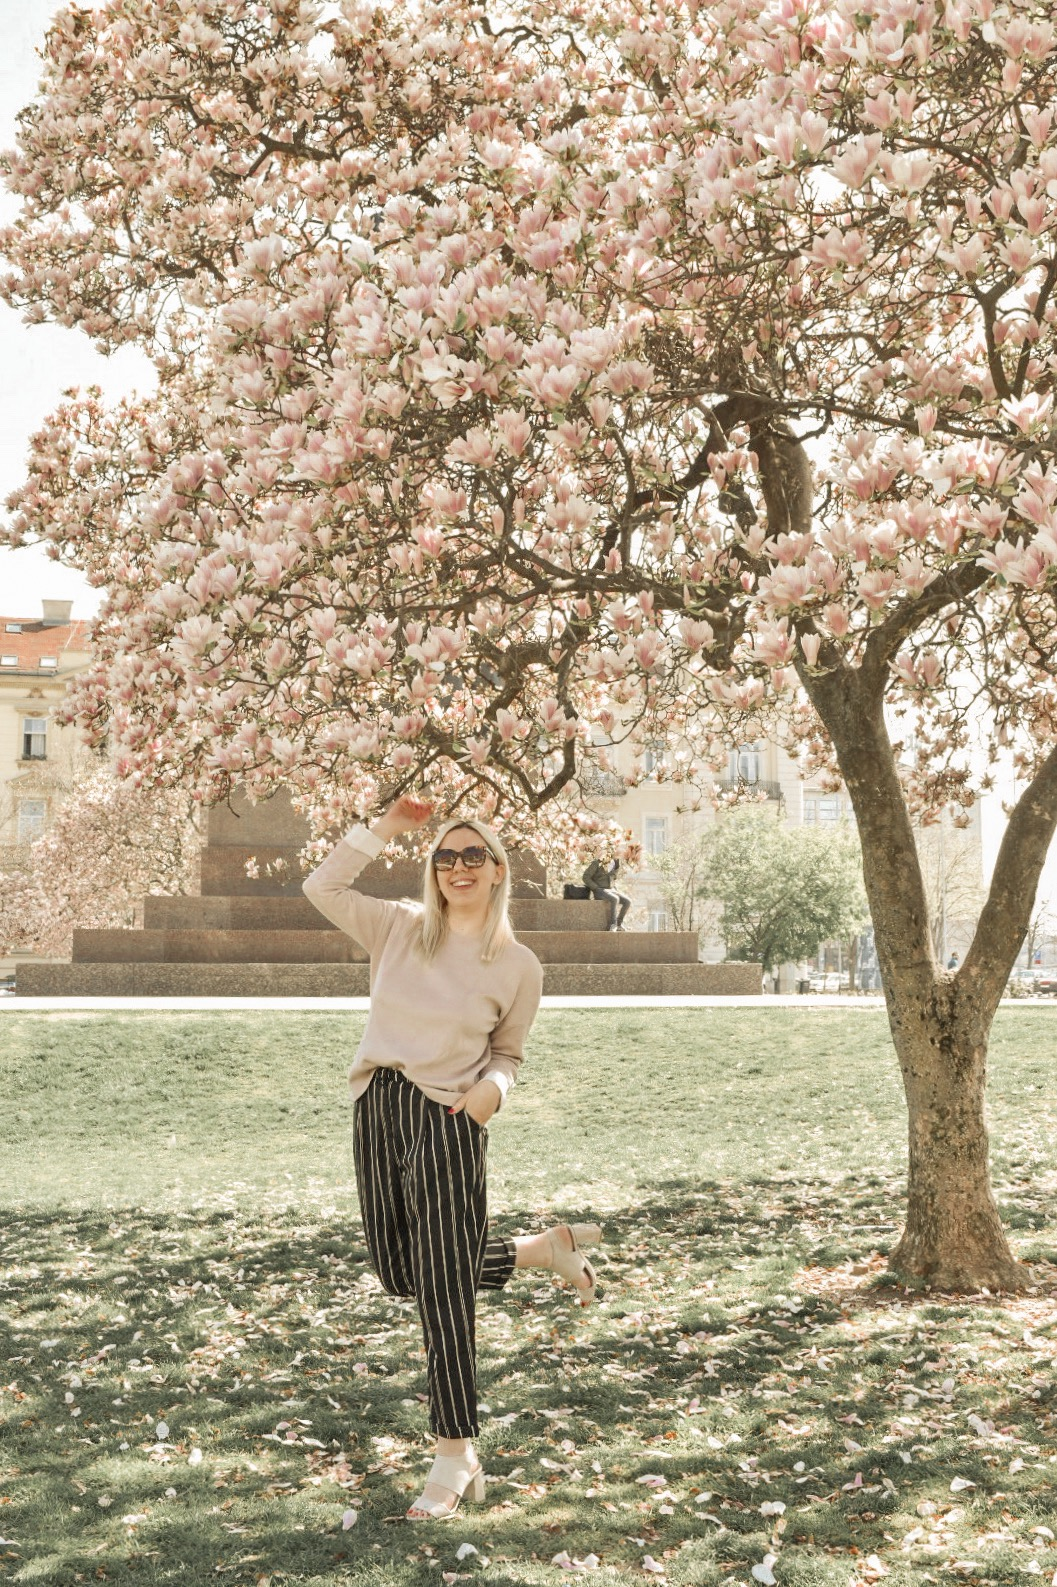 Casual cool H&M outfit under a magnolia tree